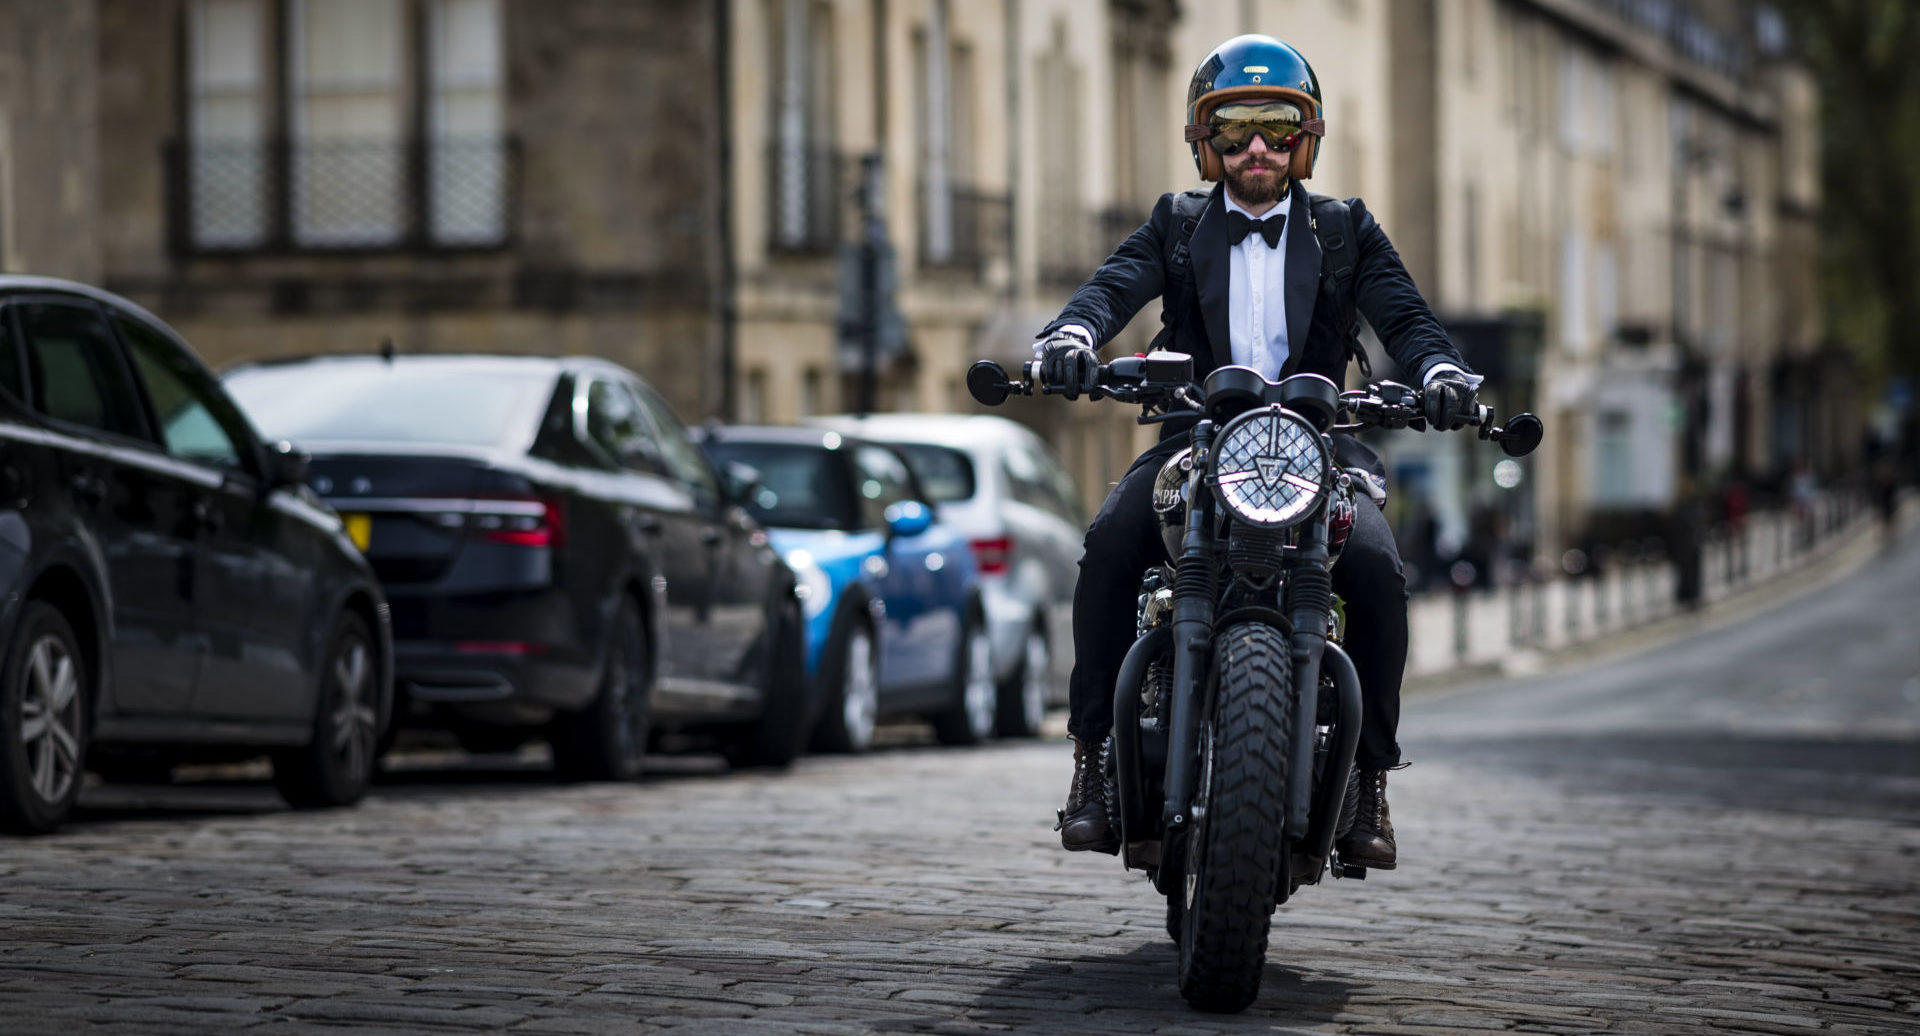 A well dressed participant on a Triumph motorcycle during a Distinguished Gentleman's Ride in England. Photo courtesy Triumph.